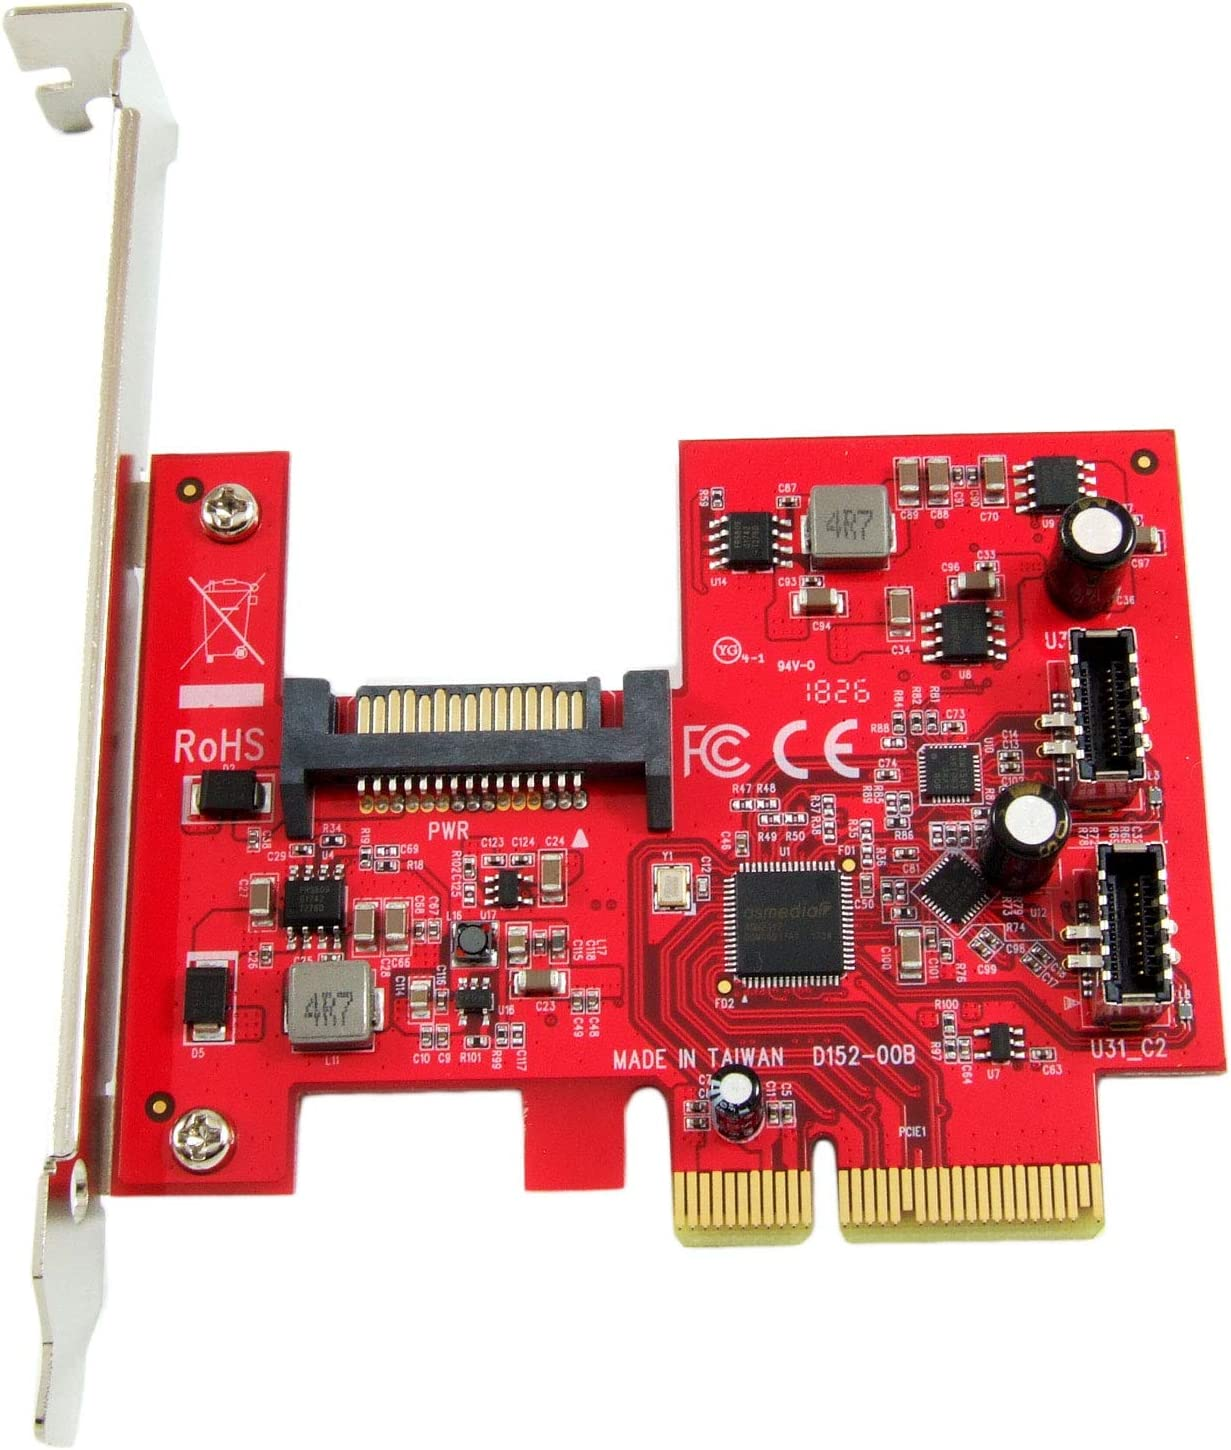 huicouldtool USB 3.1 PCI-Express Card with Dual Reversible Type-C Ports 5V 15-Pin Connector Gen 2 10 Gbps Add on Card